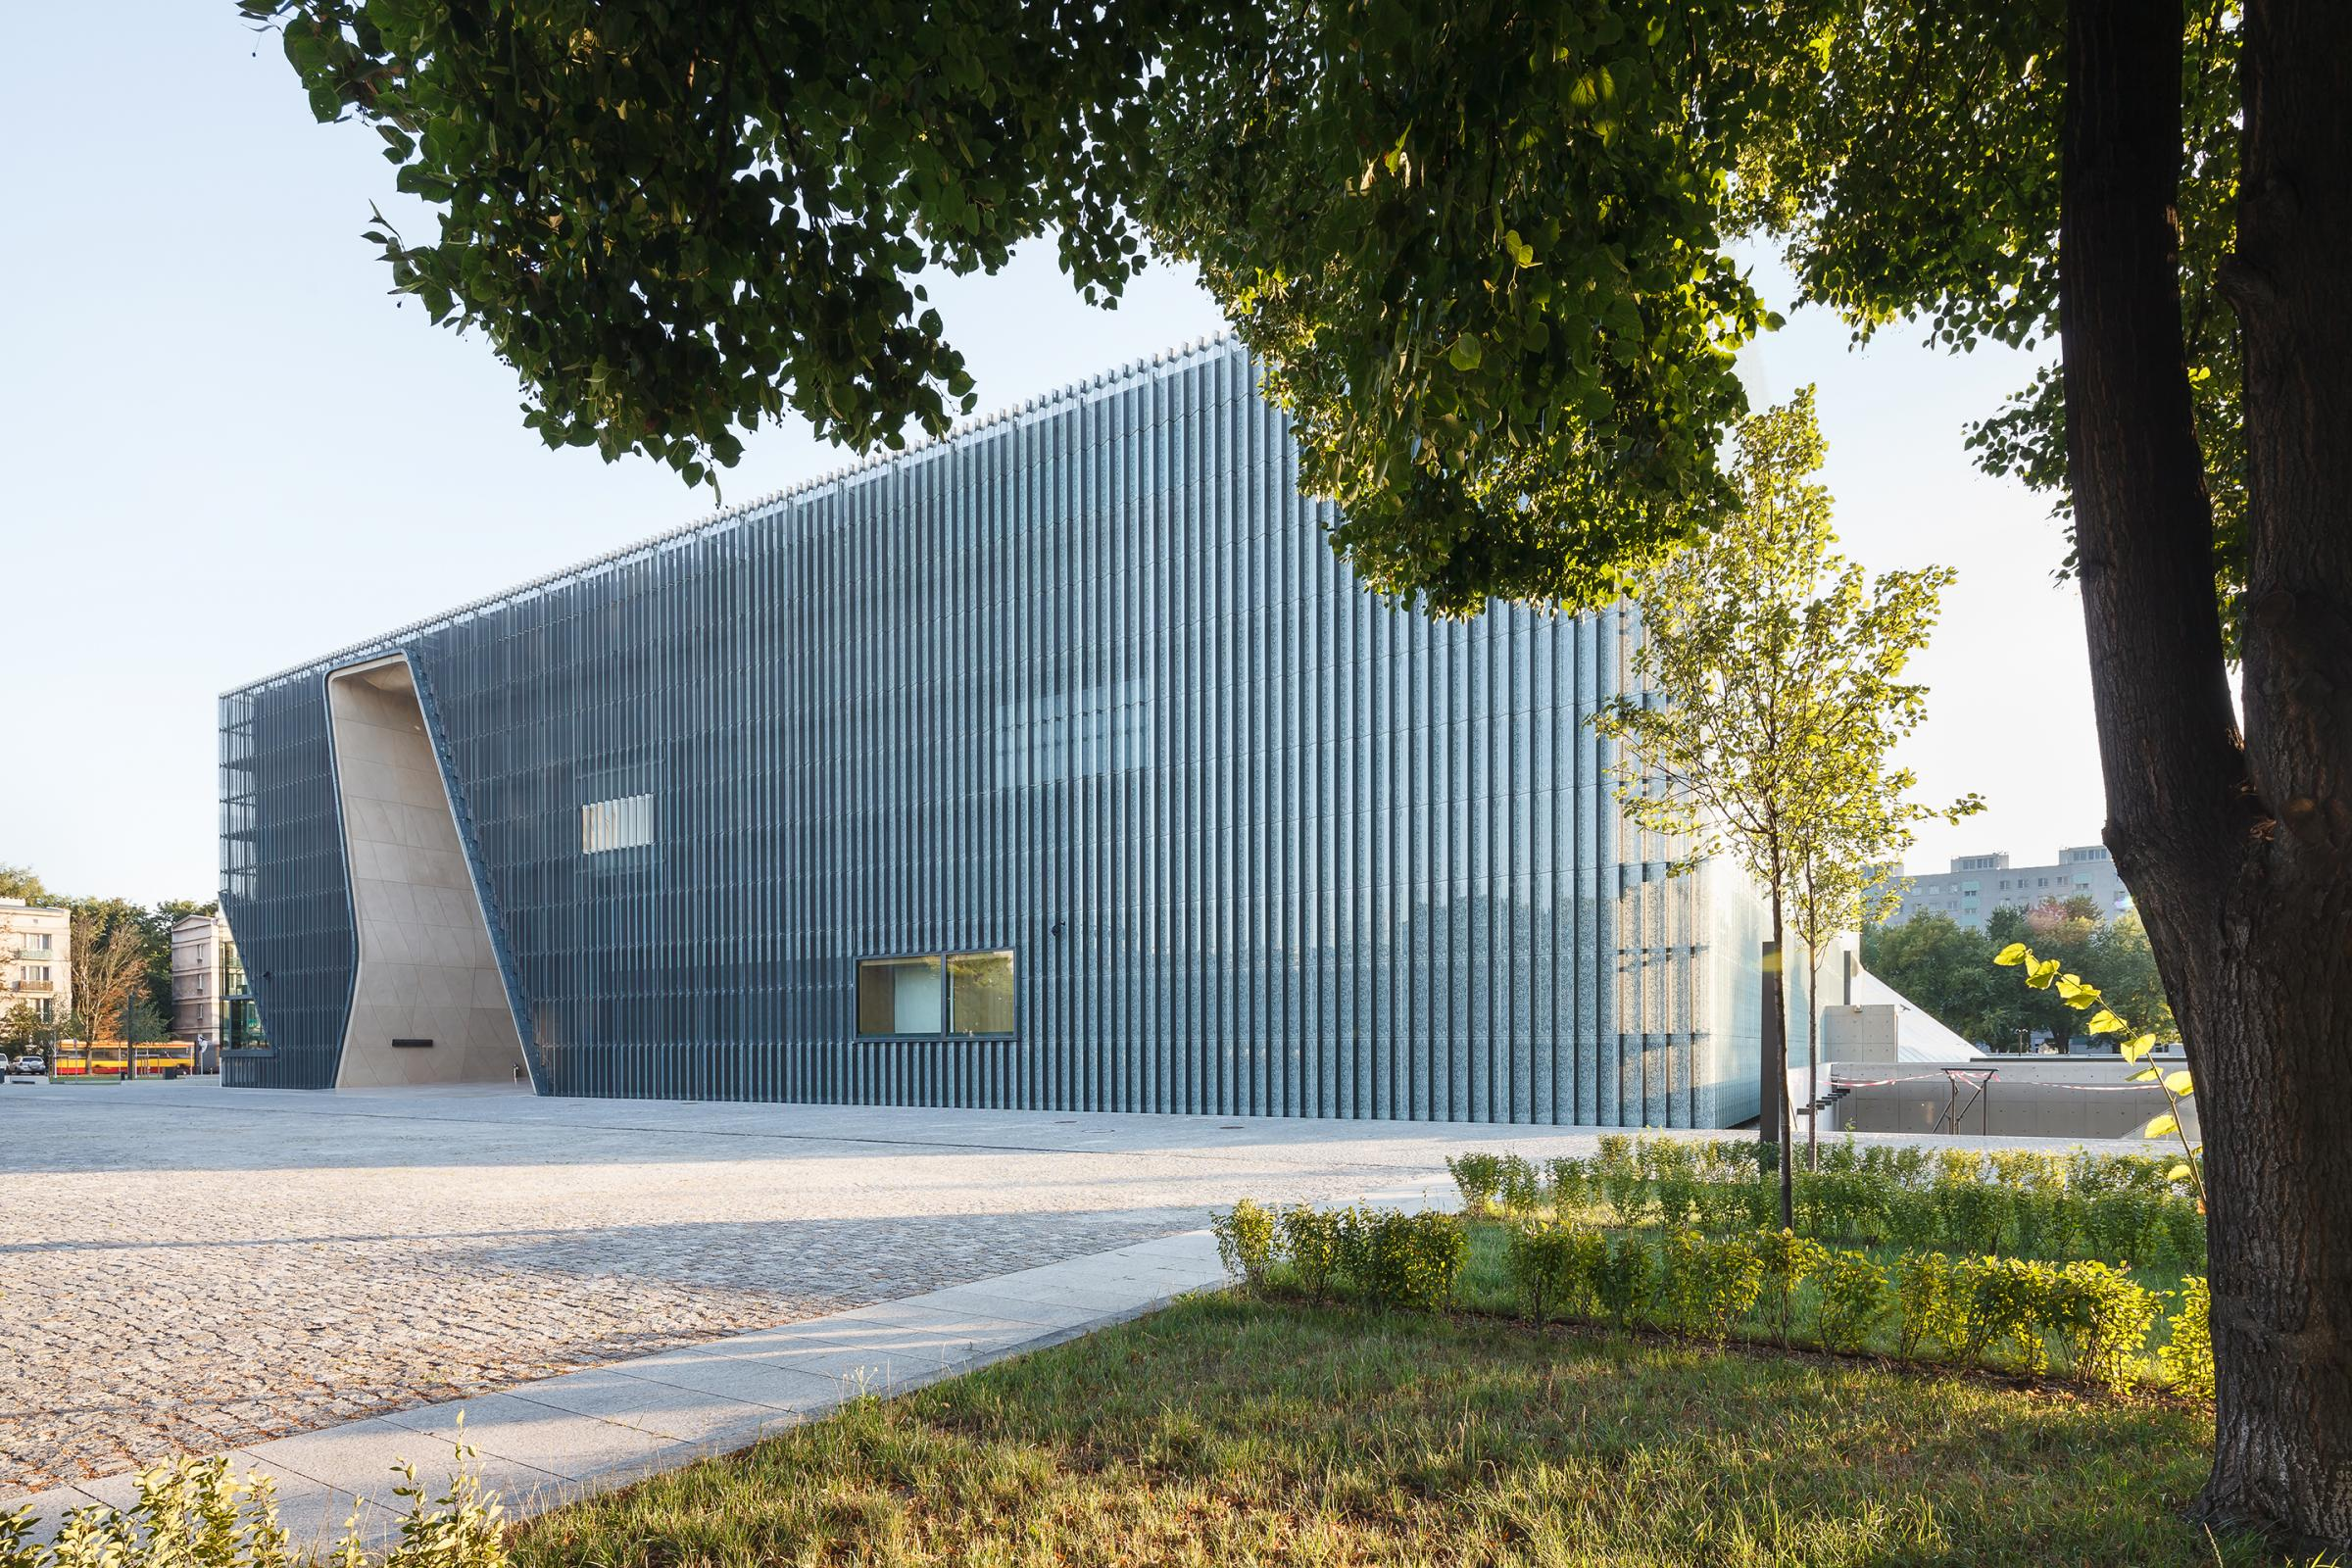 Photograph of POLIN Museum of the History of Polish Jews, designed by Lahdelma & Mahlamäki Architects and located in Warsaw, Poland